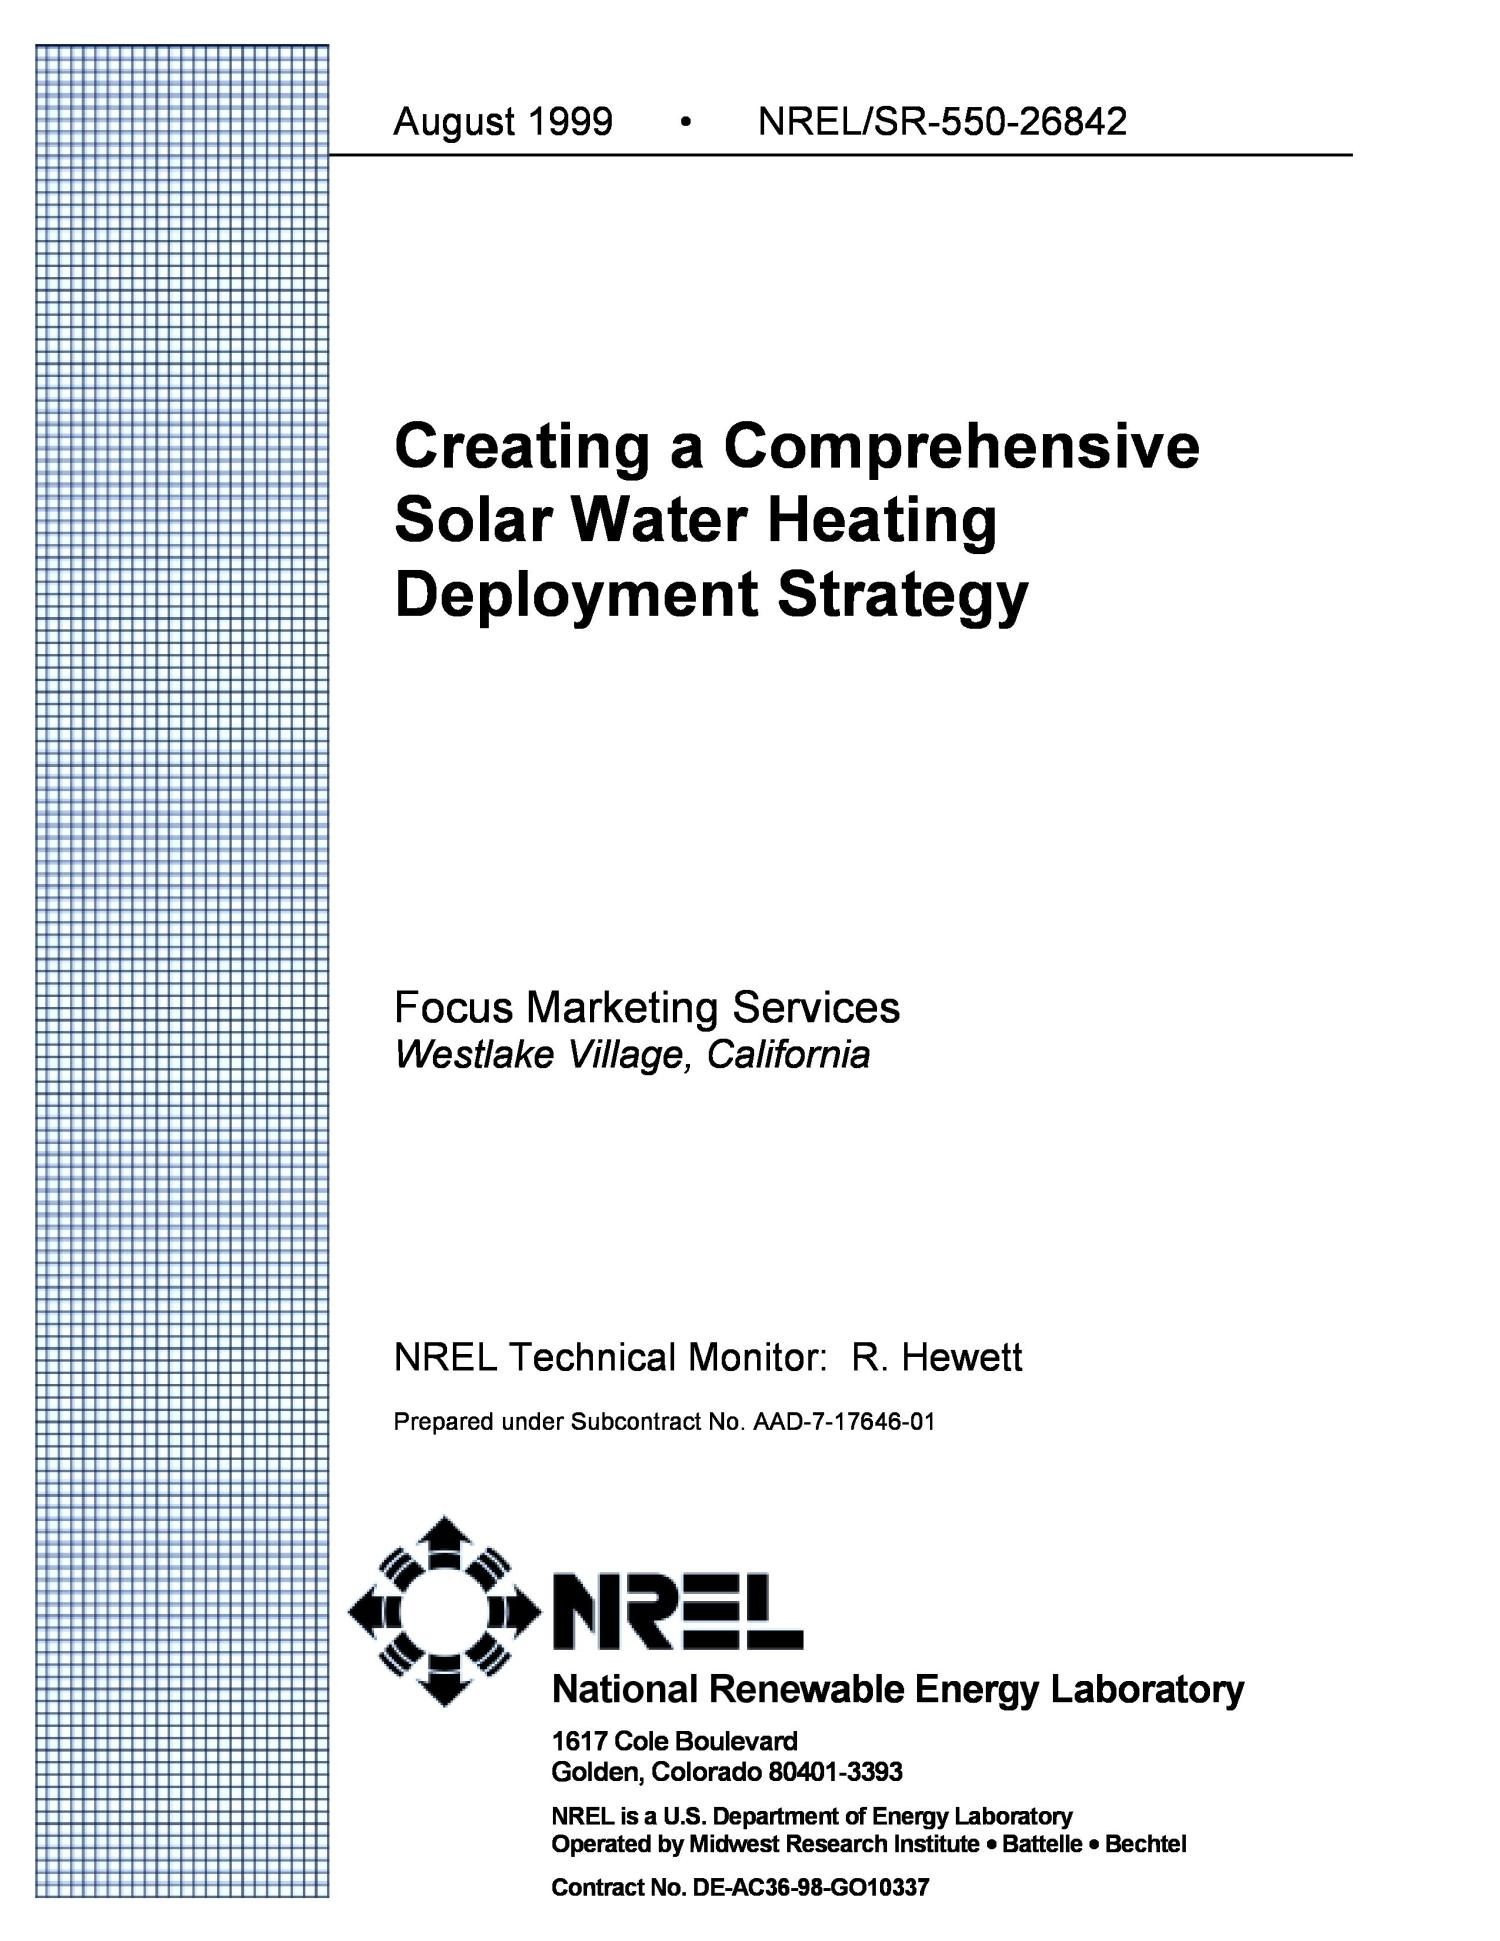 Creating a Comprehensive Solar Water Heating Deployment Strategy                                                                                                      [Sequence #]: 2 of 28